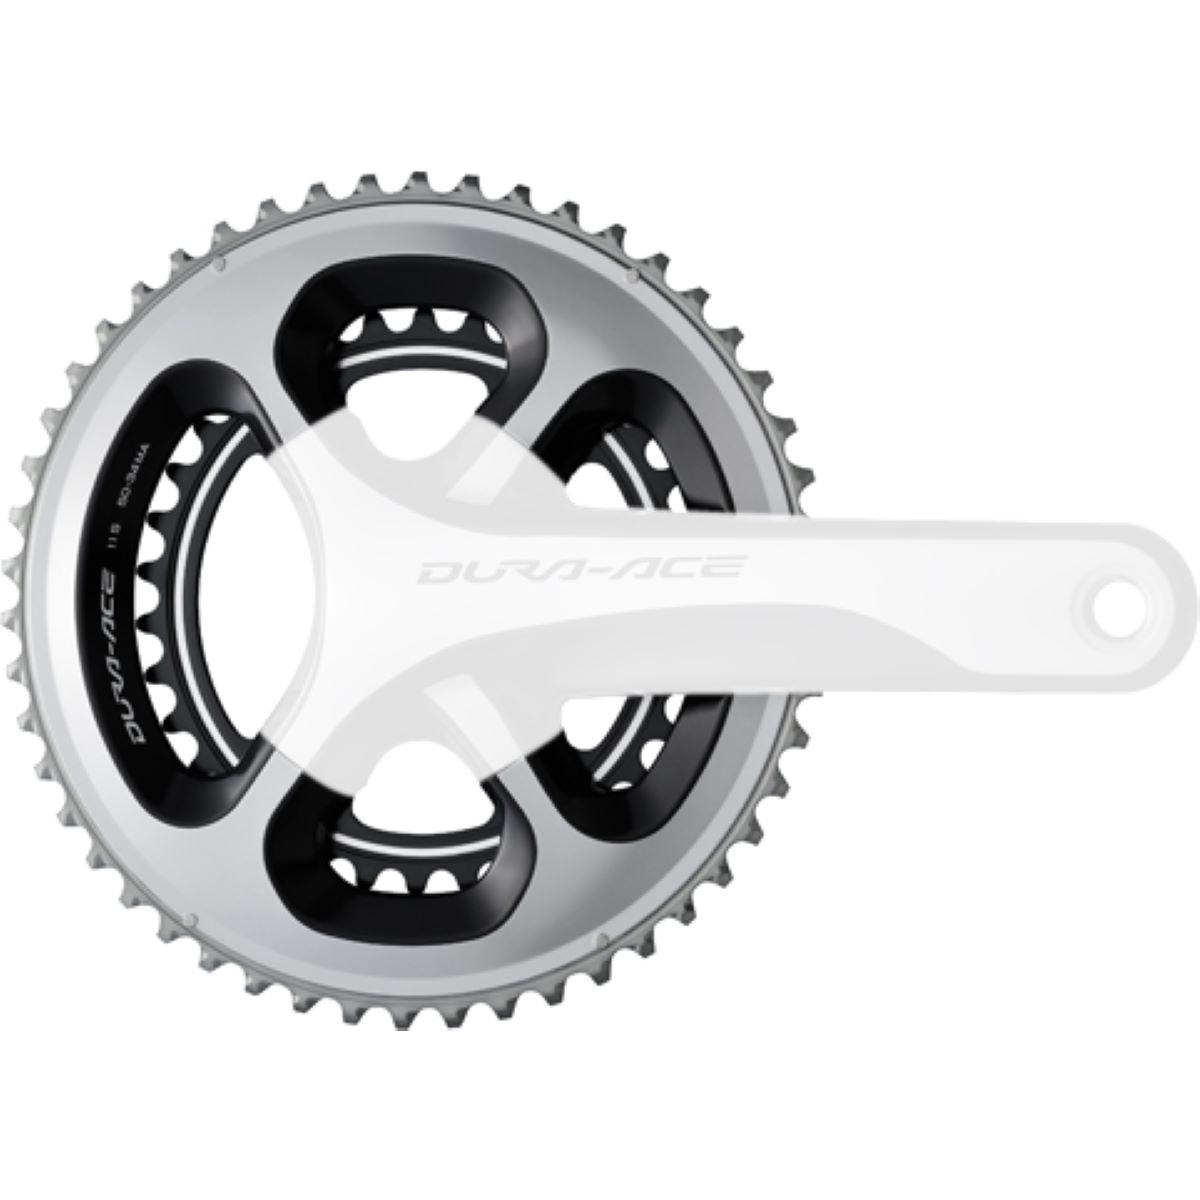 Plateau interne Shimano Dura Ace FC-9000 34 dents - 34 Tooth (50-34)